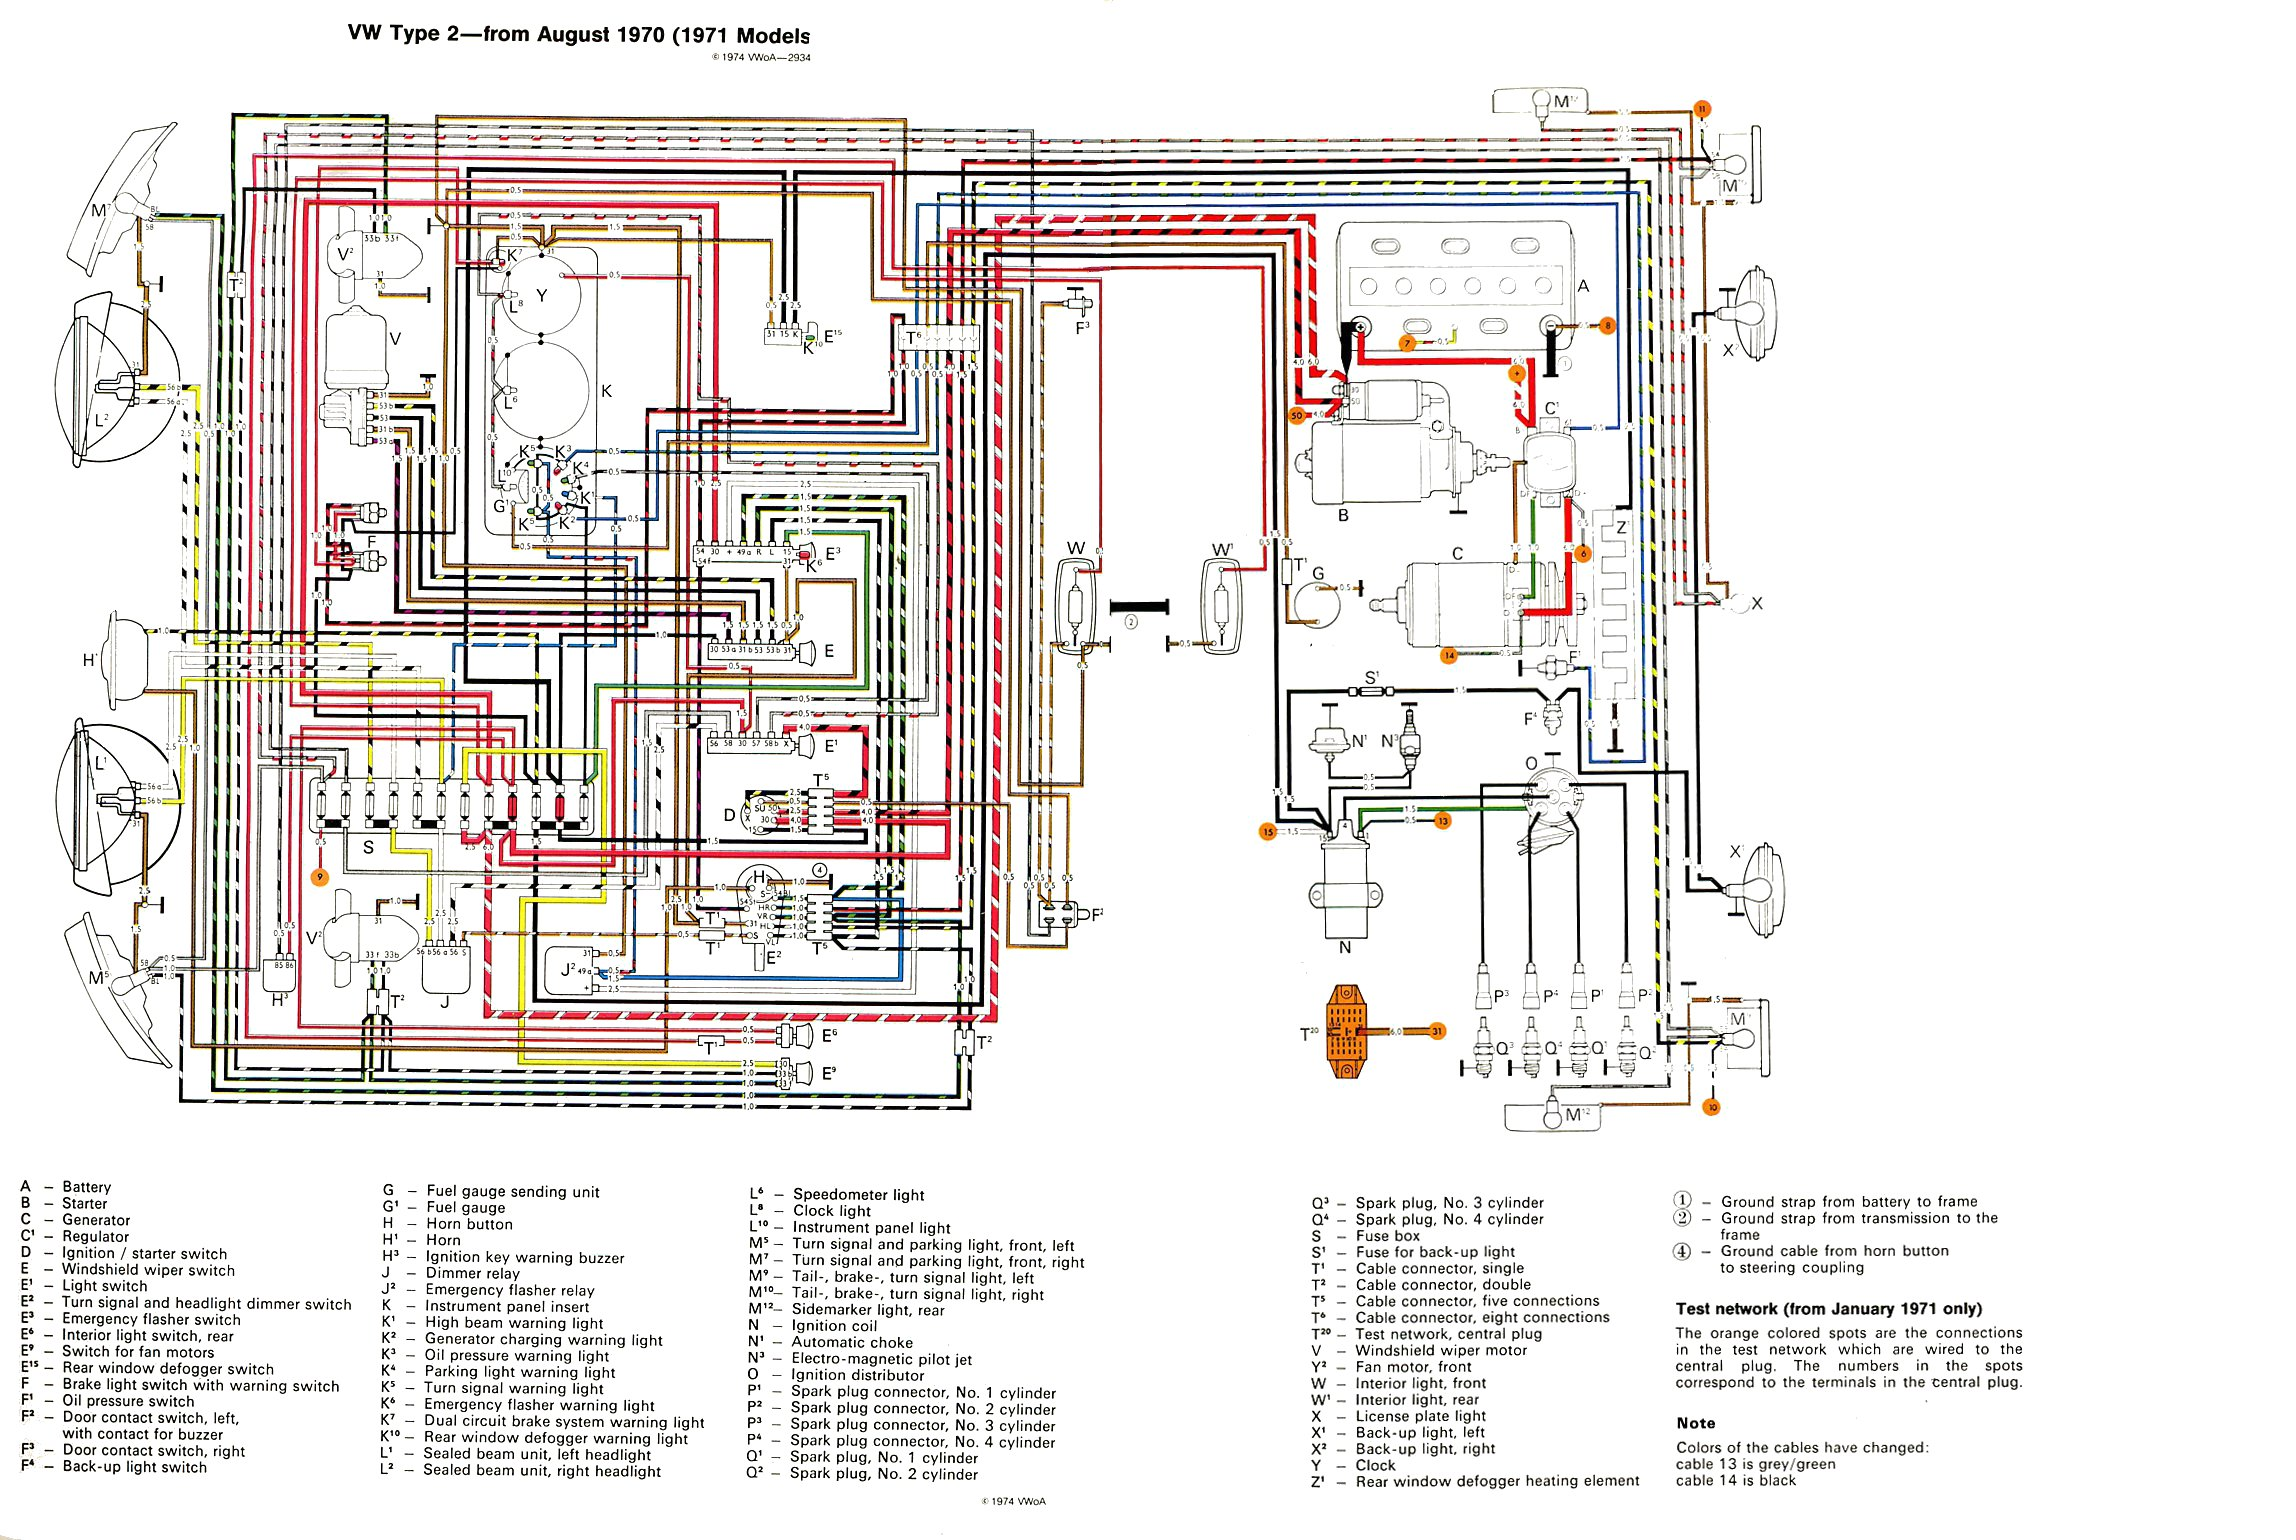 baybus_71 thesamba com type 2 wiring diagrams 1979 c10 wiring diagram at bayanpartner.co